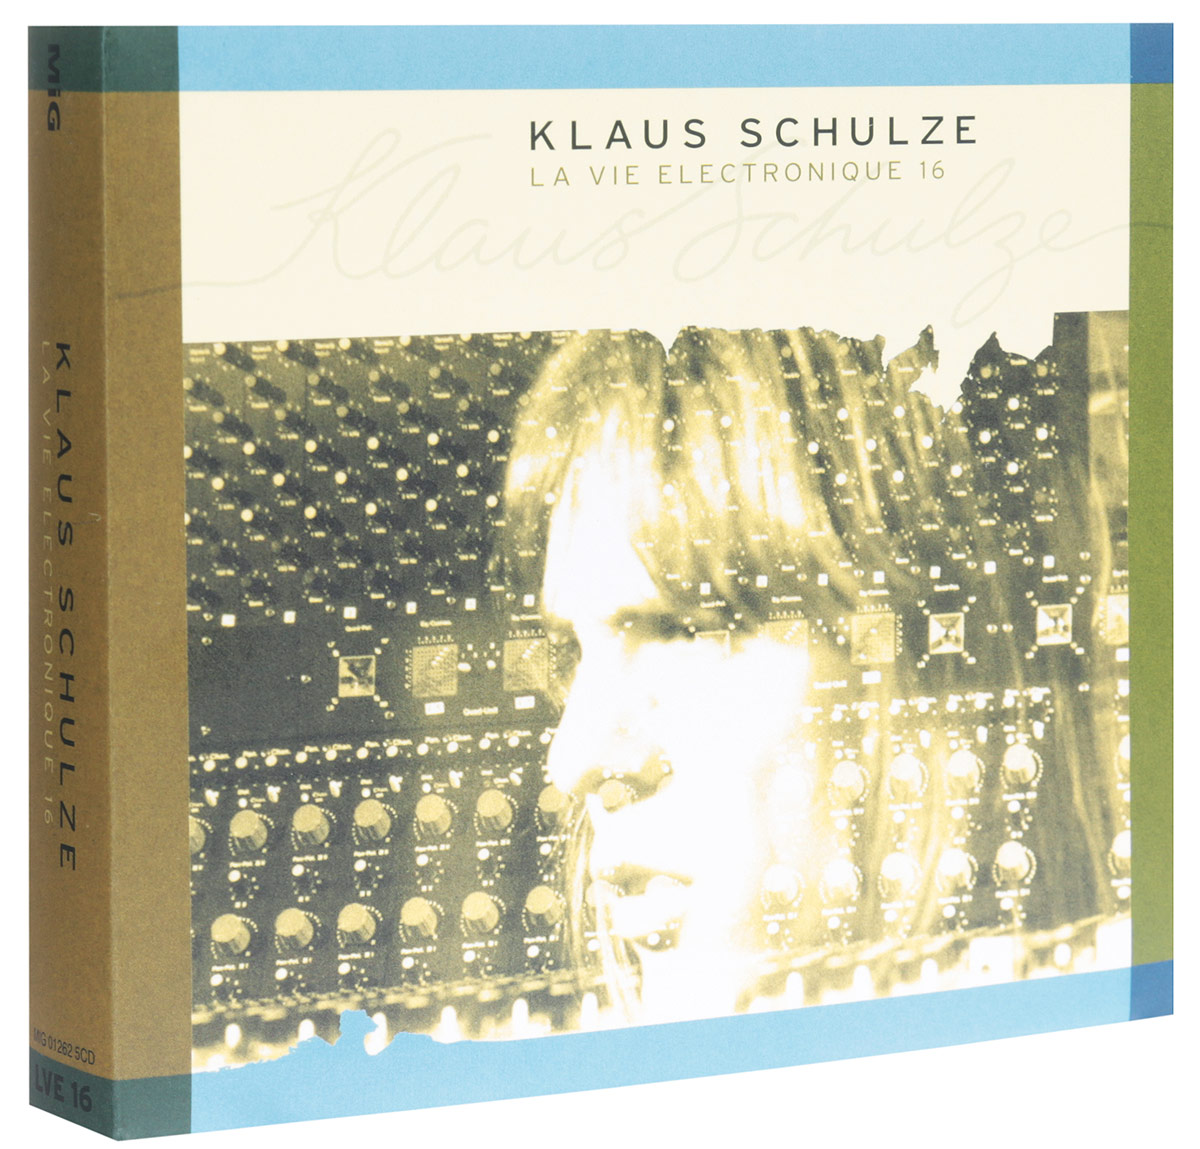 Клаус Шульце Klaus Schulze. La Vie Electronique 16 (5 CD) клаус шульце klaus schulze la vie electronique 11 3 cd